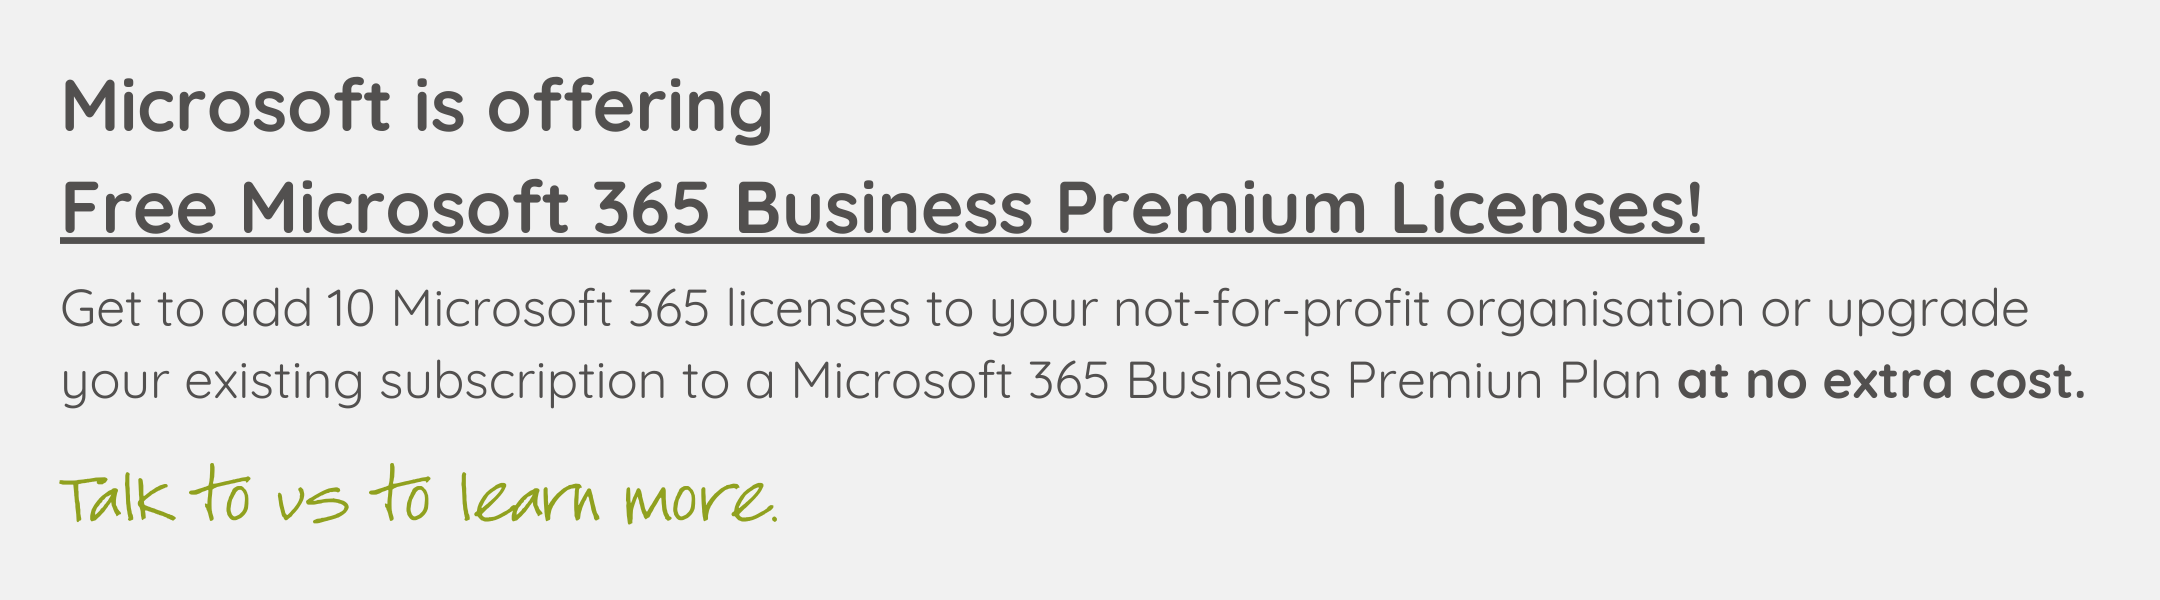 Free Microsoft 365 Business Premium Licenses for NFPs